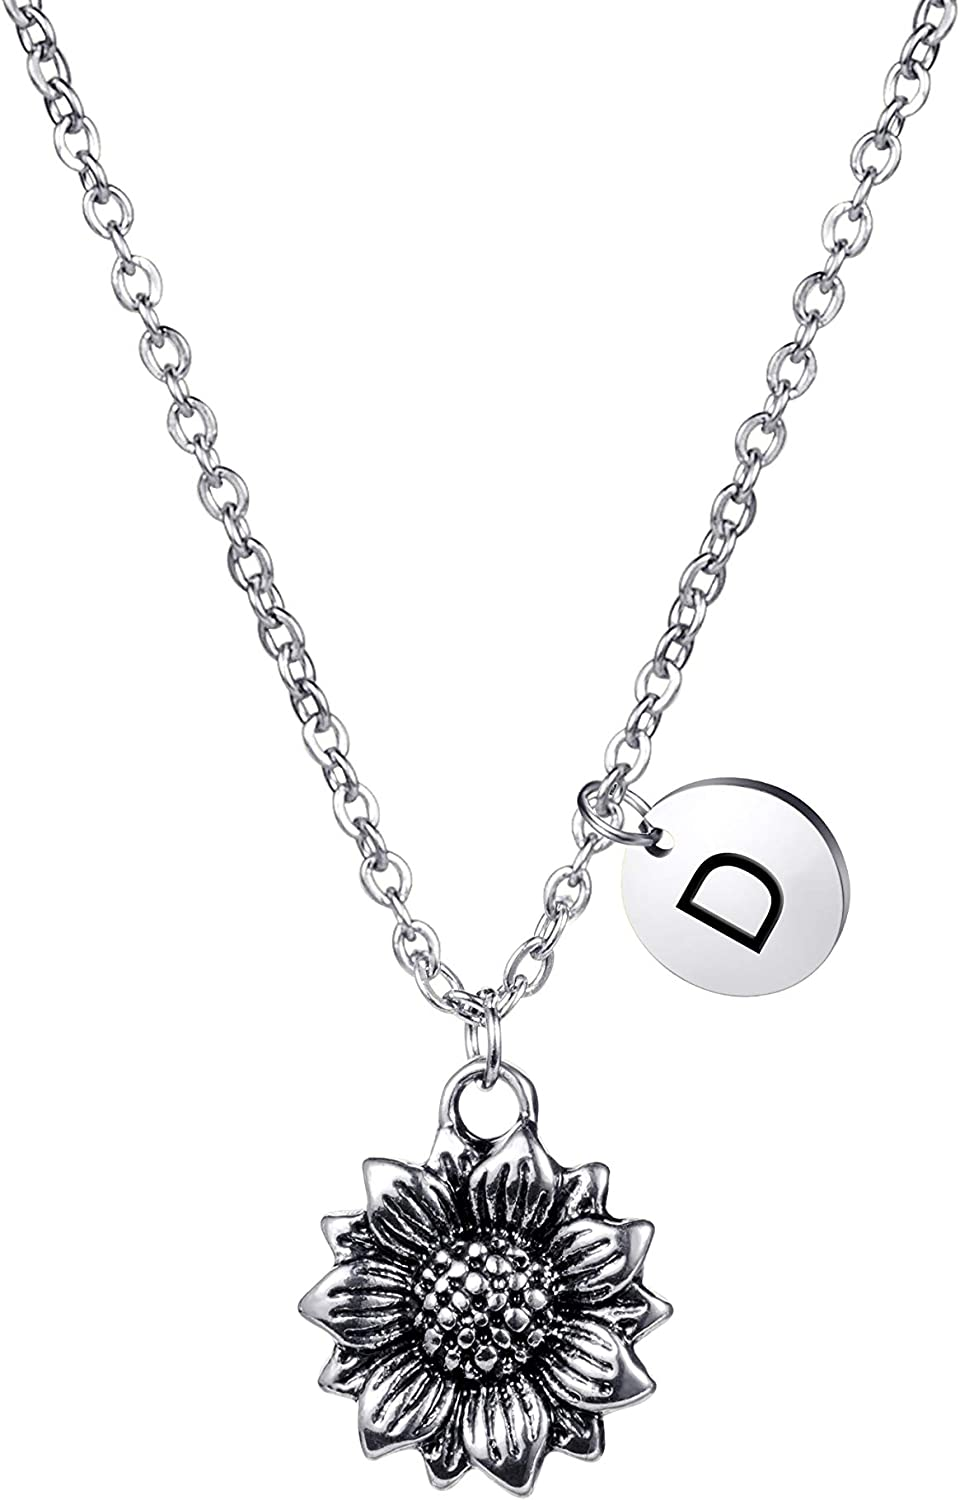 JoycuFF Dainty Department store Antique Silver Personalized Necklace Branded goods Sunflower Cu